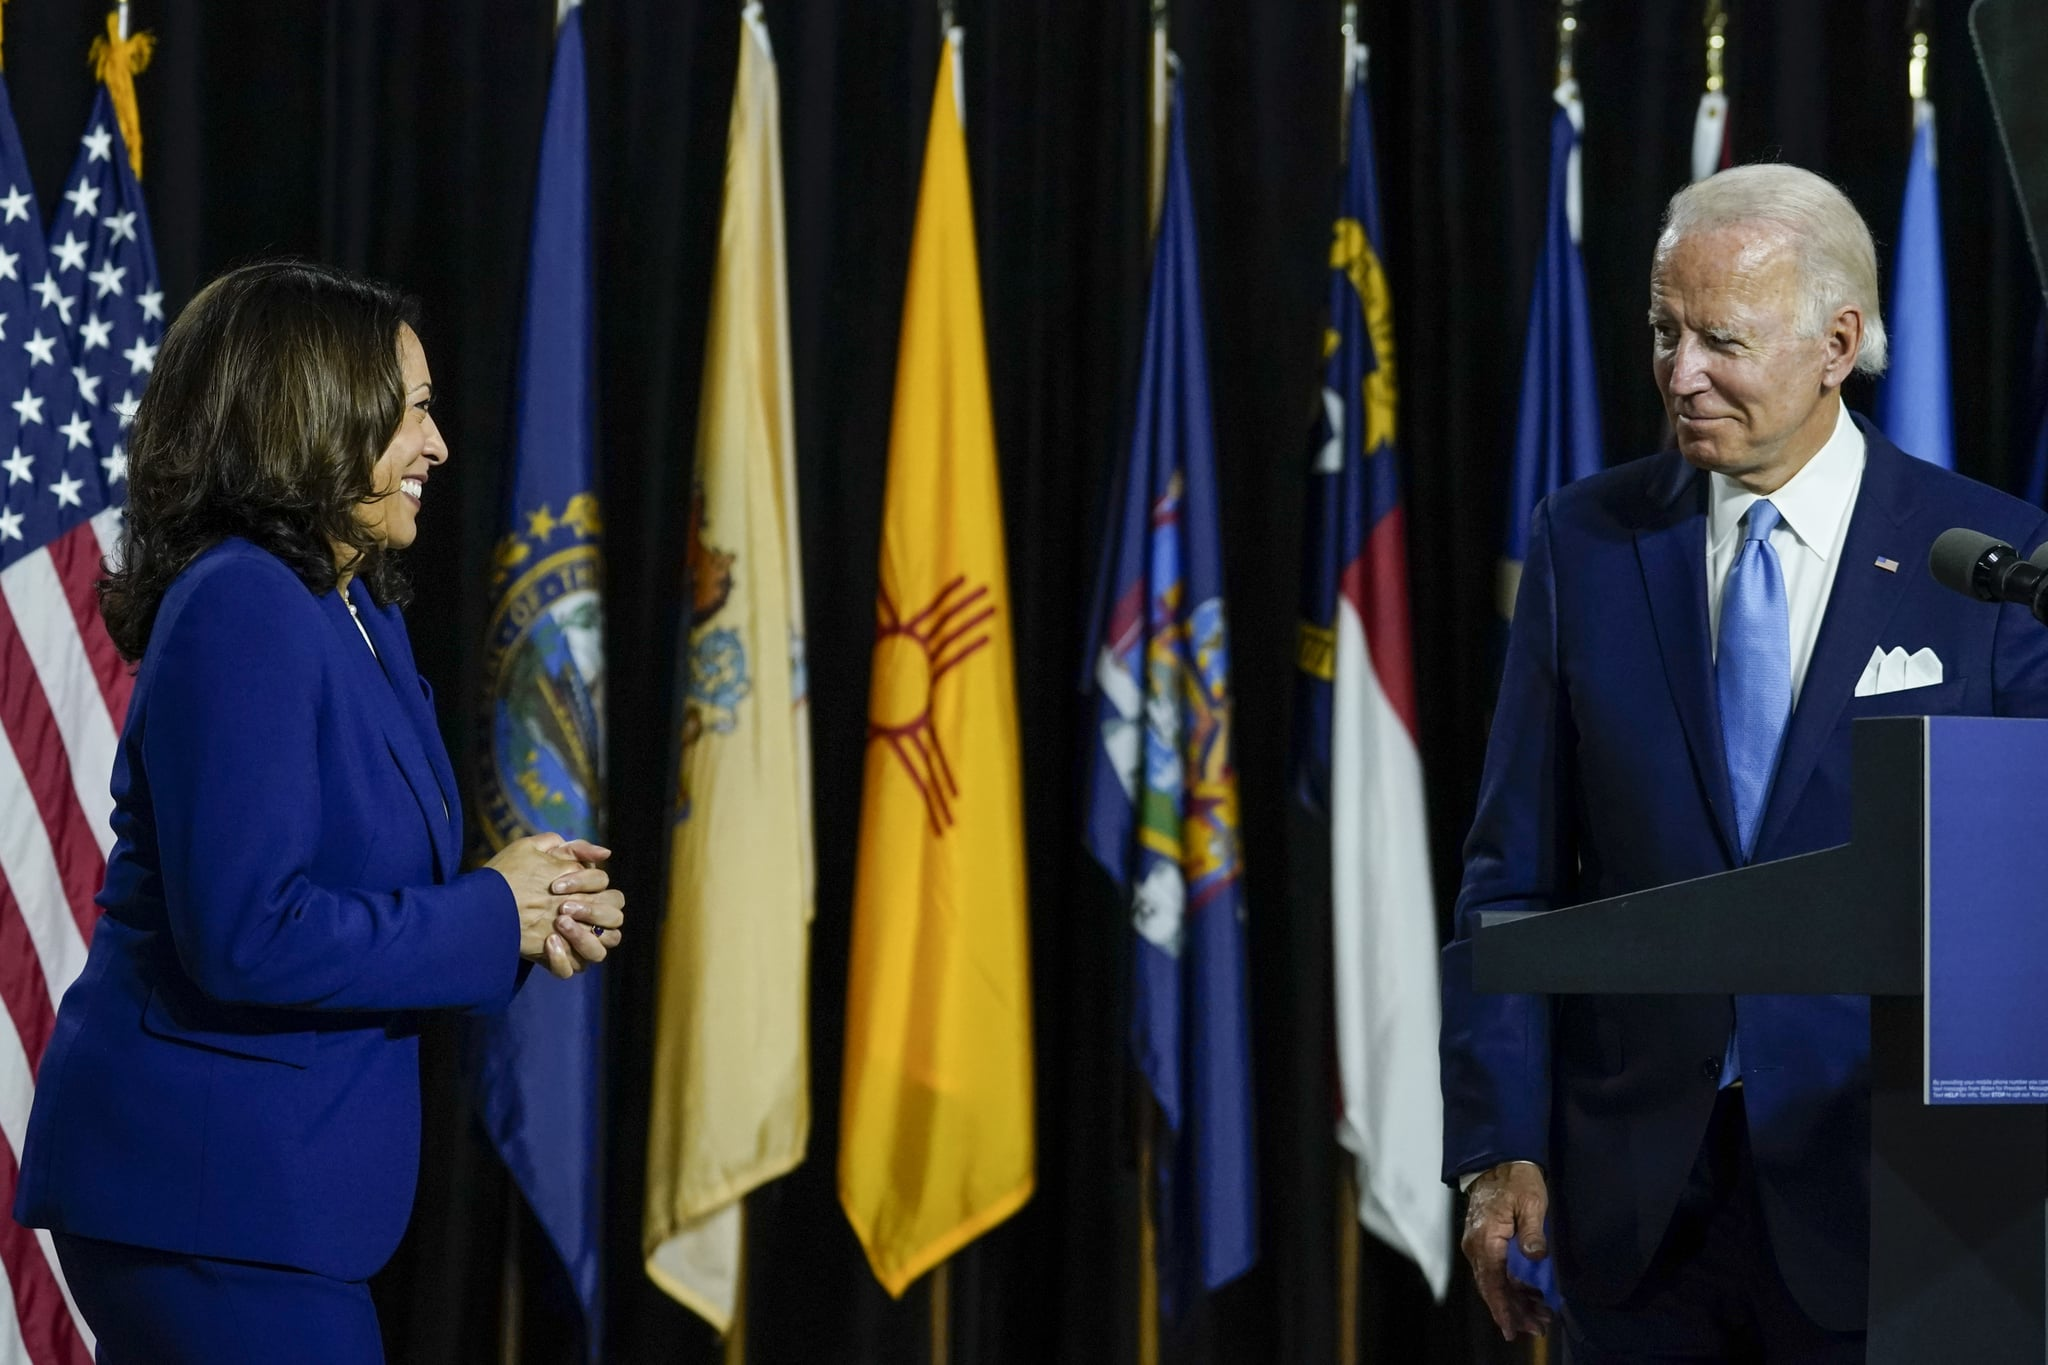 WILMINGTON, DE - AUGUST 12: Democratic presidential candidate former Vice President Joe Biden invites his running mate Sen. Kamala Harris (D-CA) to the stage to deliver remarks at the Alexis Dupont High School on August 12, 2020 in Wilmington, Delaware. Harris is the first Black woman and first person of Indian descent to be a presumptive nominee on a presidential ticket by a major party in U.S. history. (Photo by Drew Angerer/Getty Images)